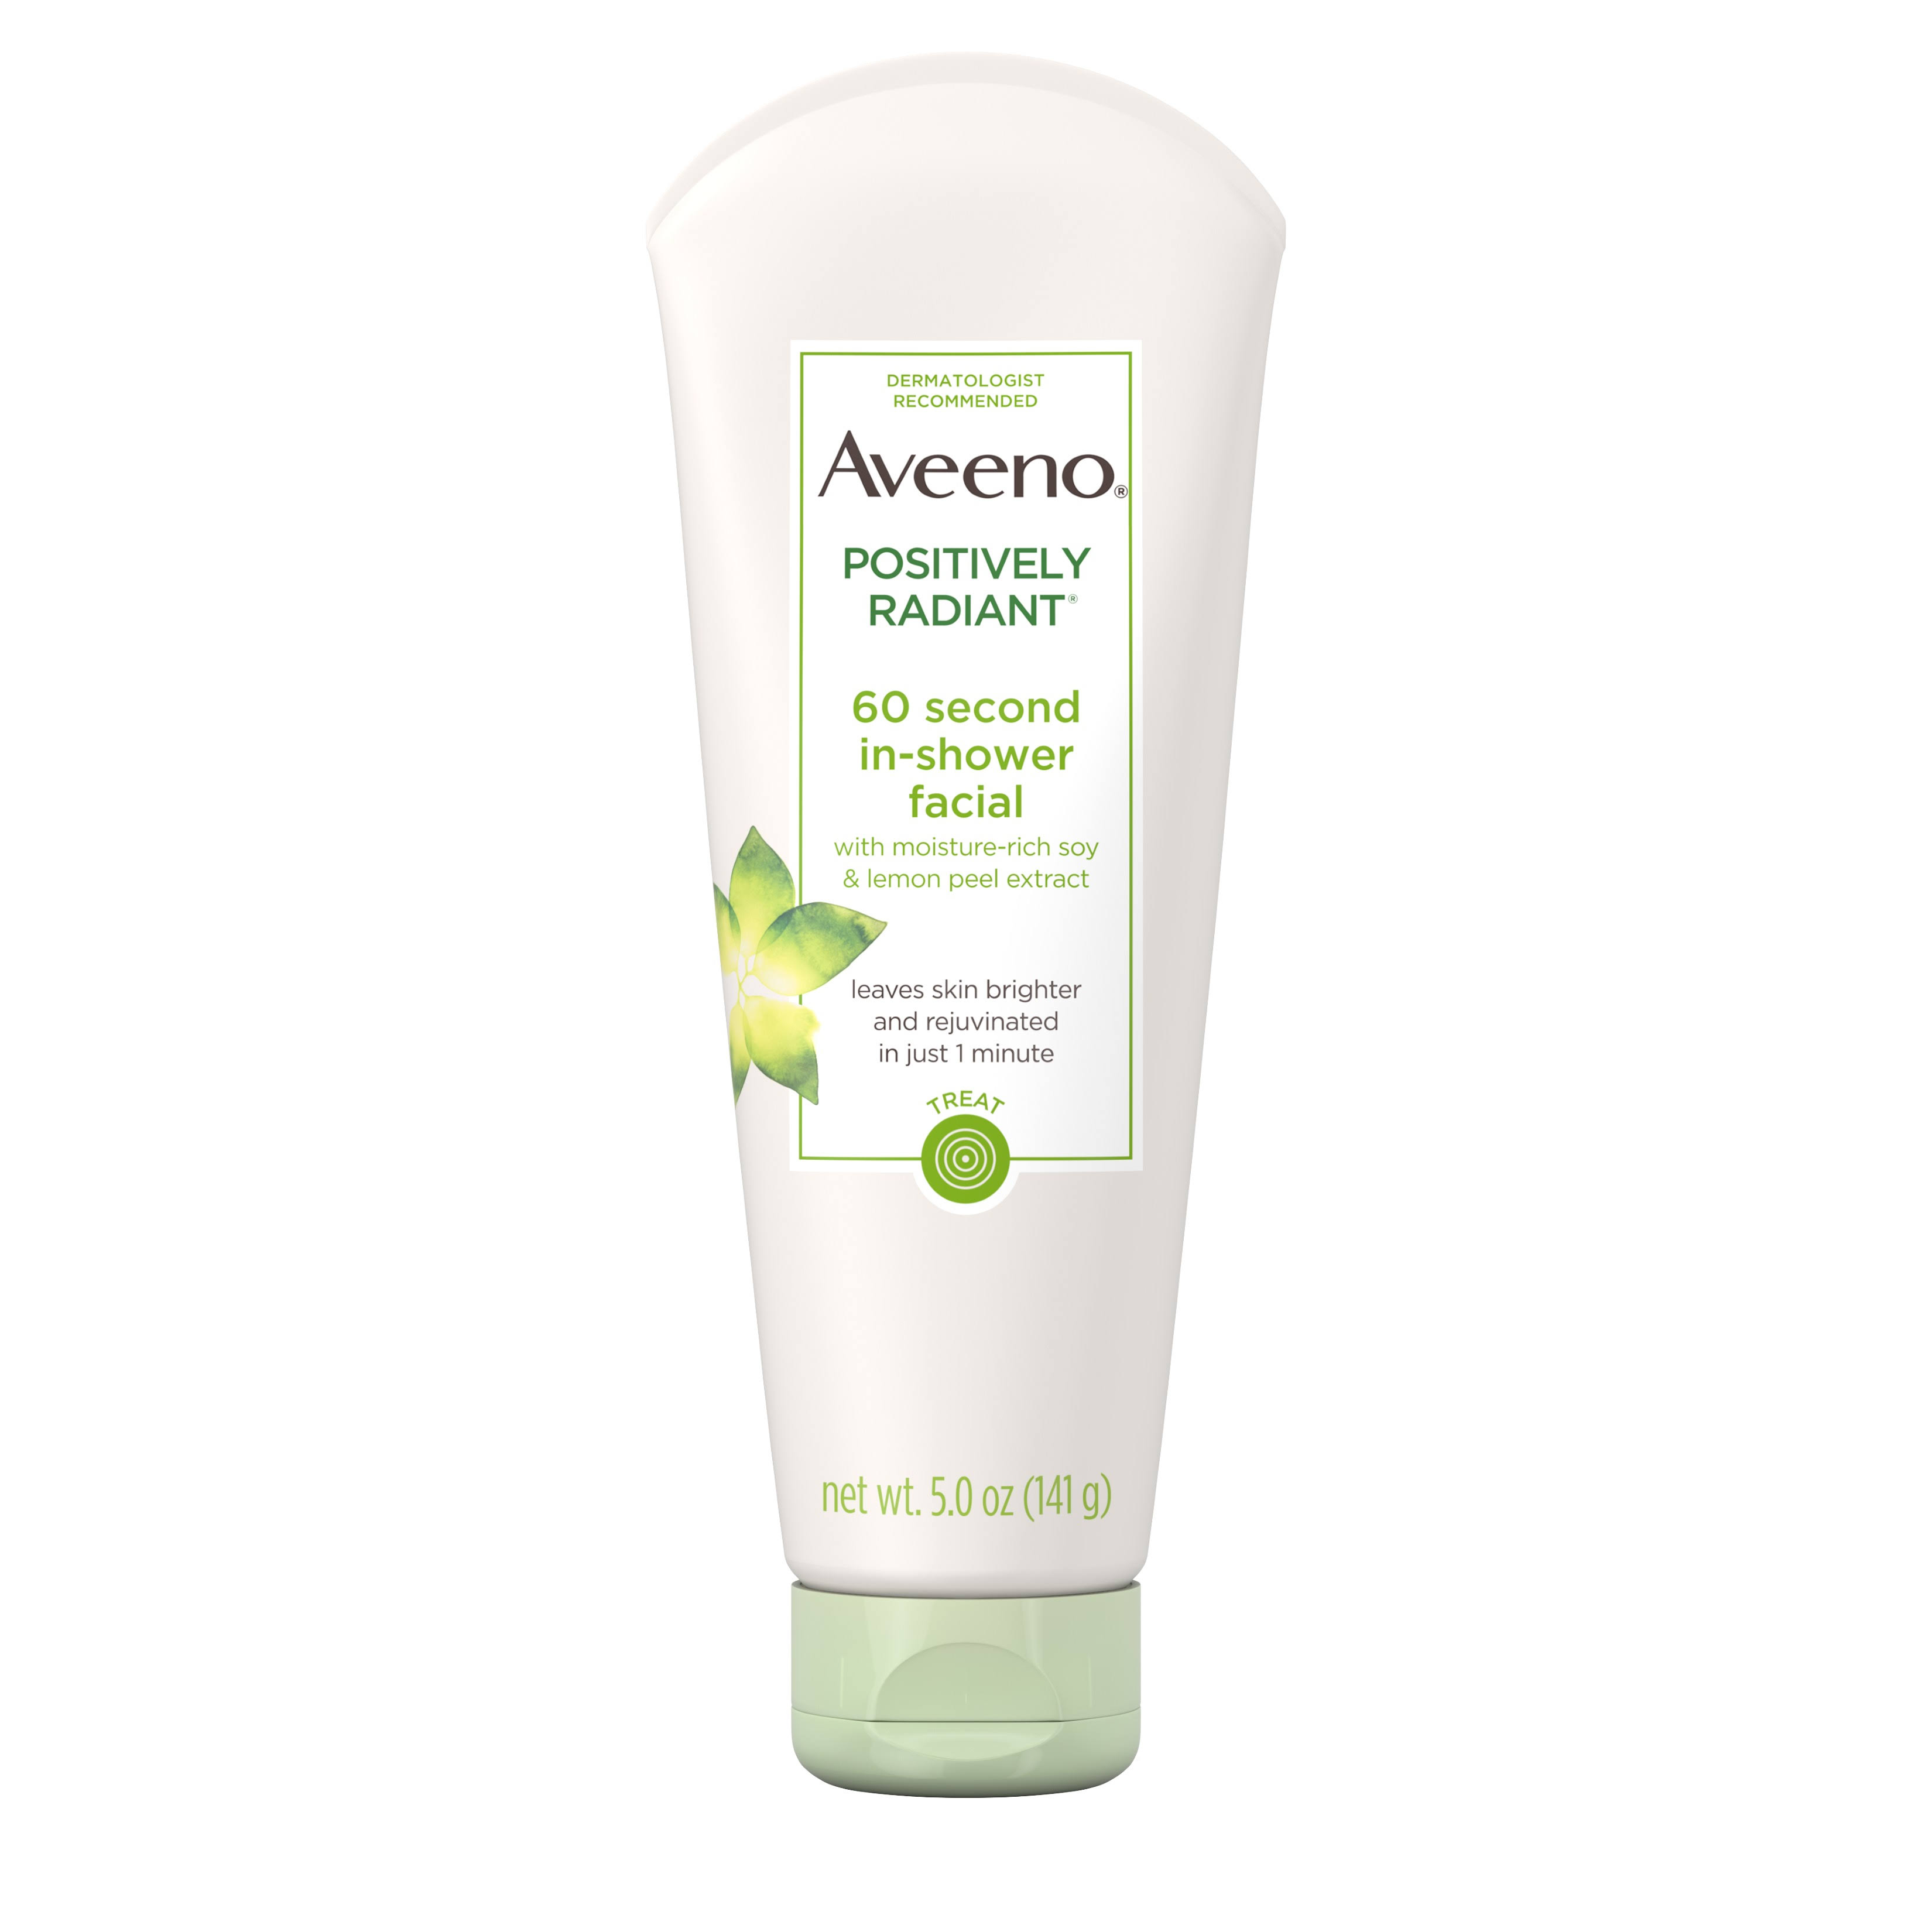 Aveeno Active Naturals Positively Radiant 60 Second In-Shower Facial - 5oz